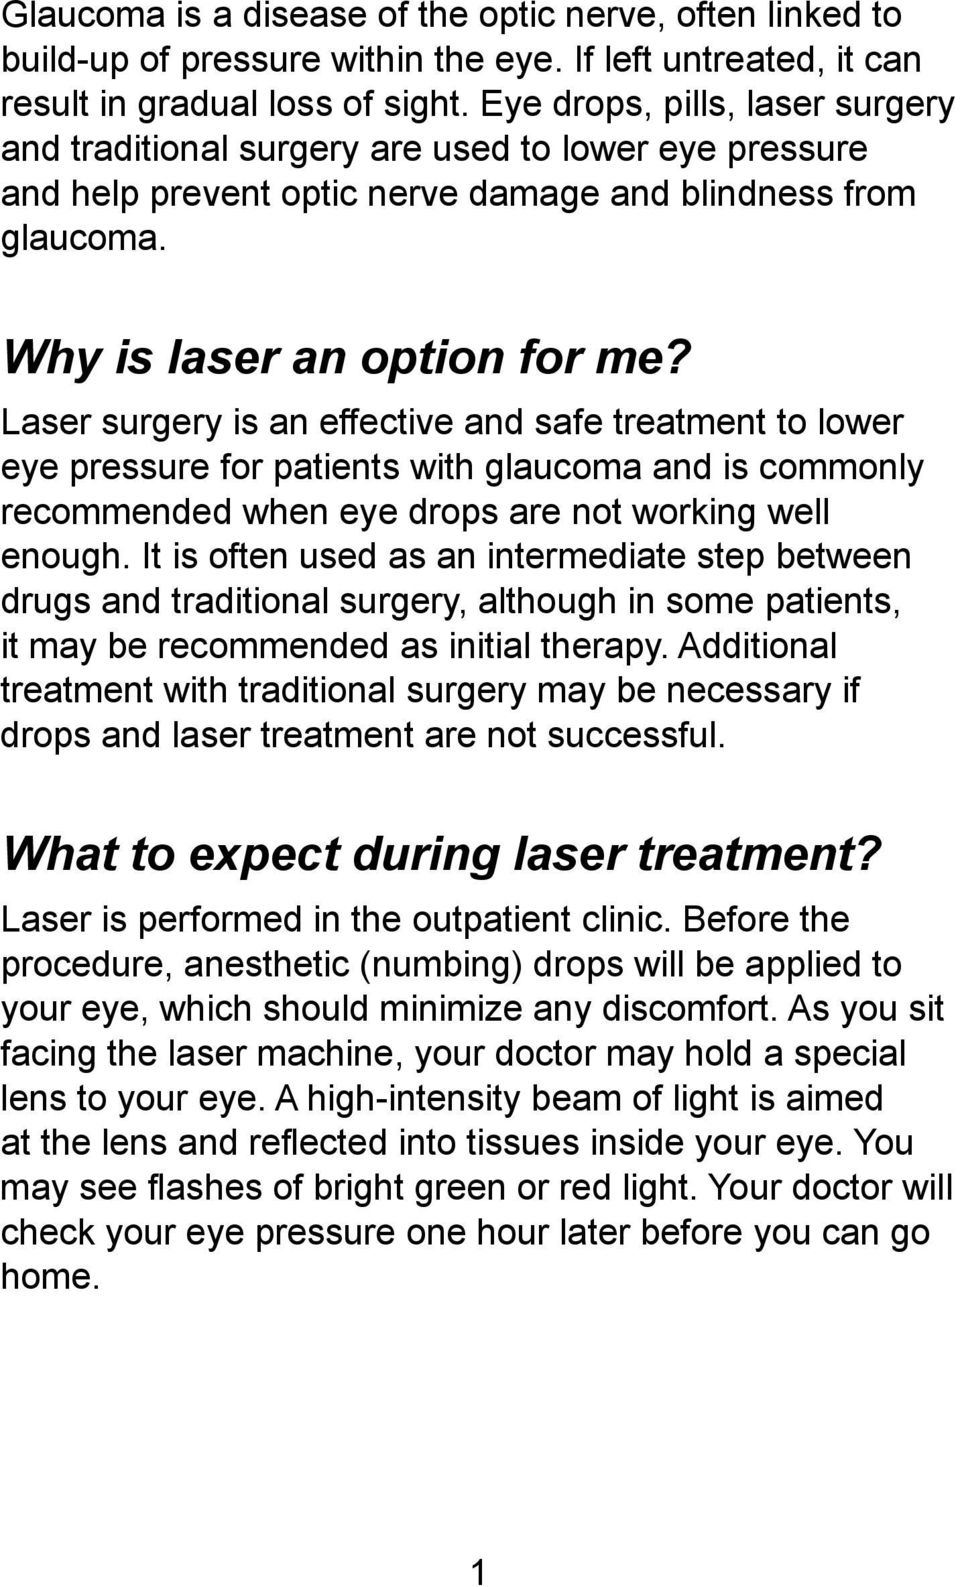 Laser surgery is an effective and safe treatment to lower eye pressure for patients with glaucoma and is commonly recommended when eye drops are not working well enough.